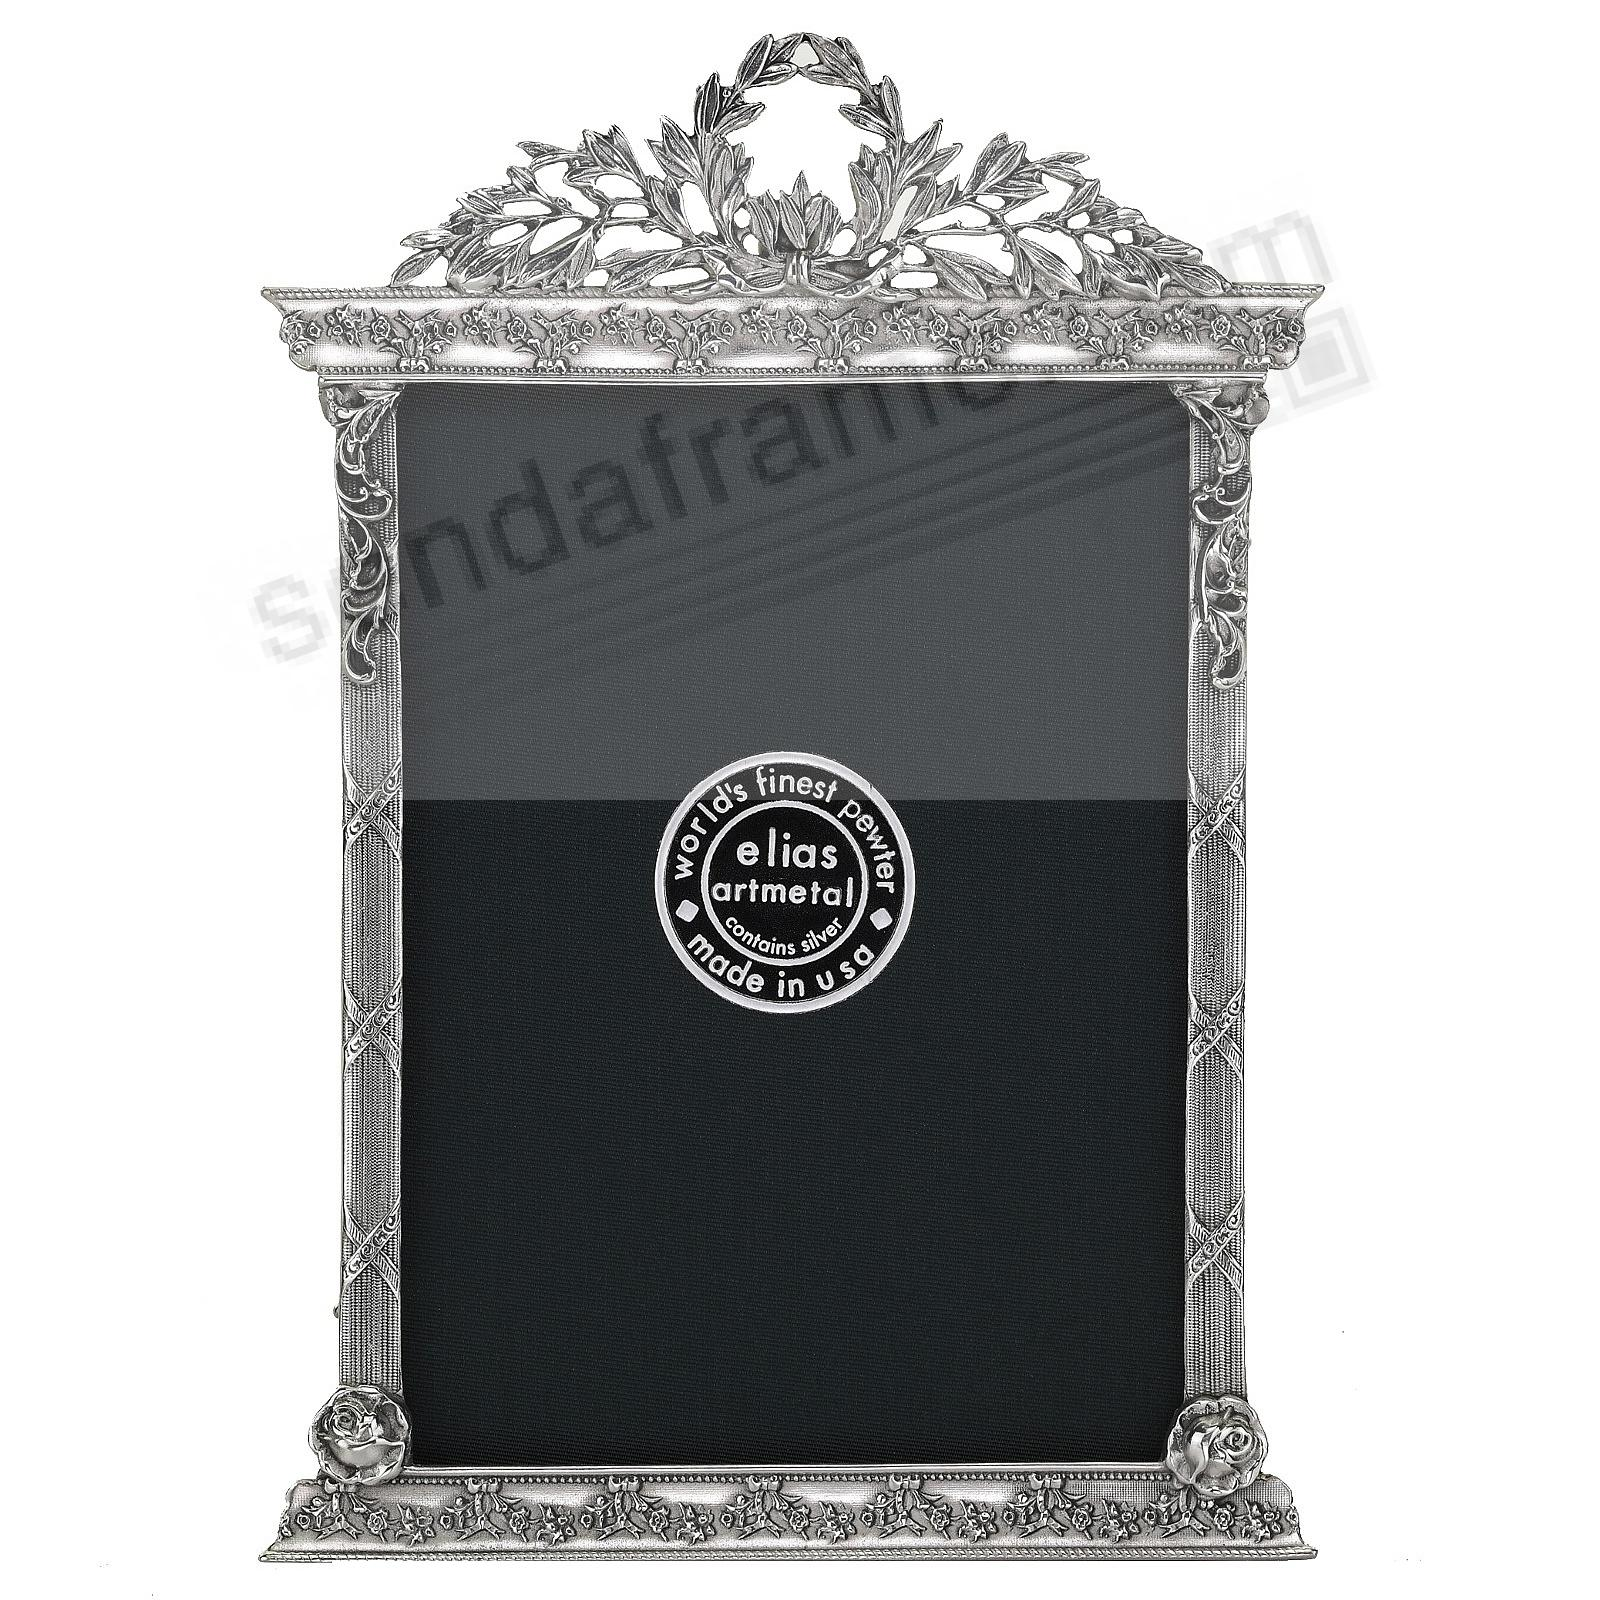 FRENCH TABERNACLE Silvered Fine Pewter 4x6 frame by Elias Artmetal®